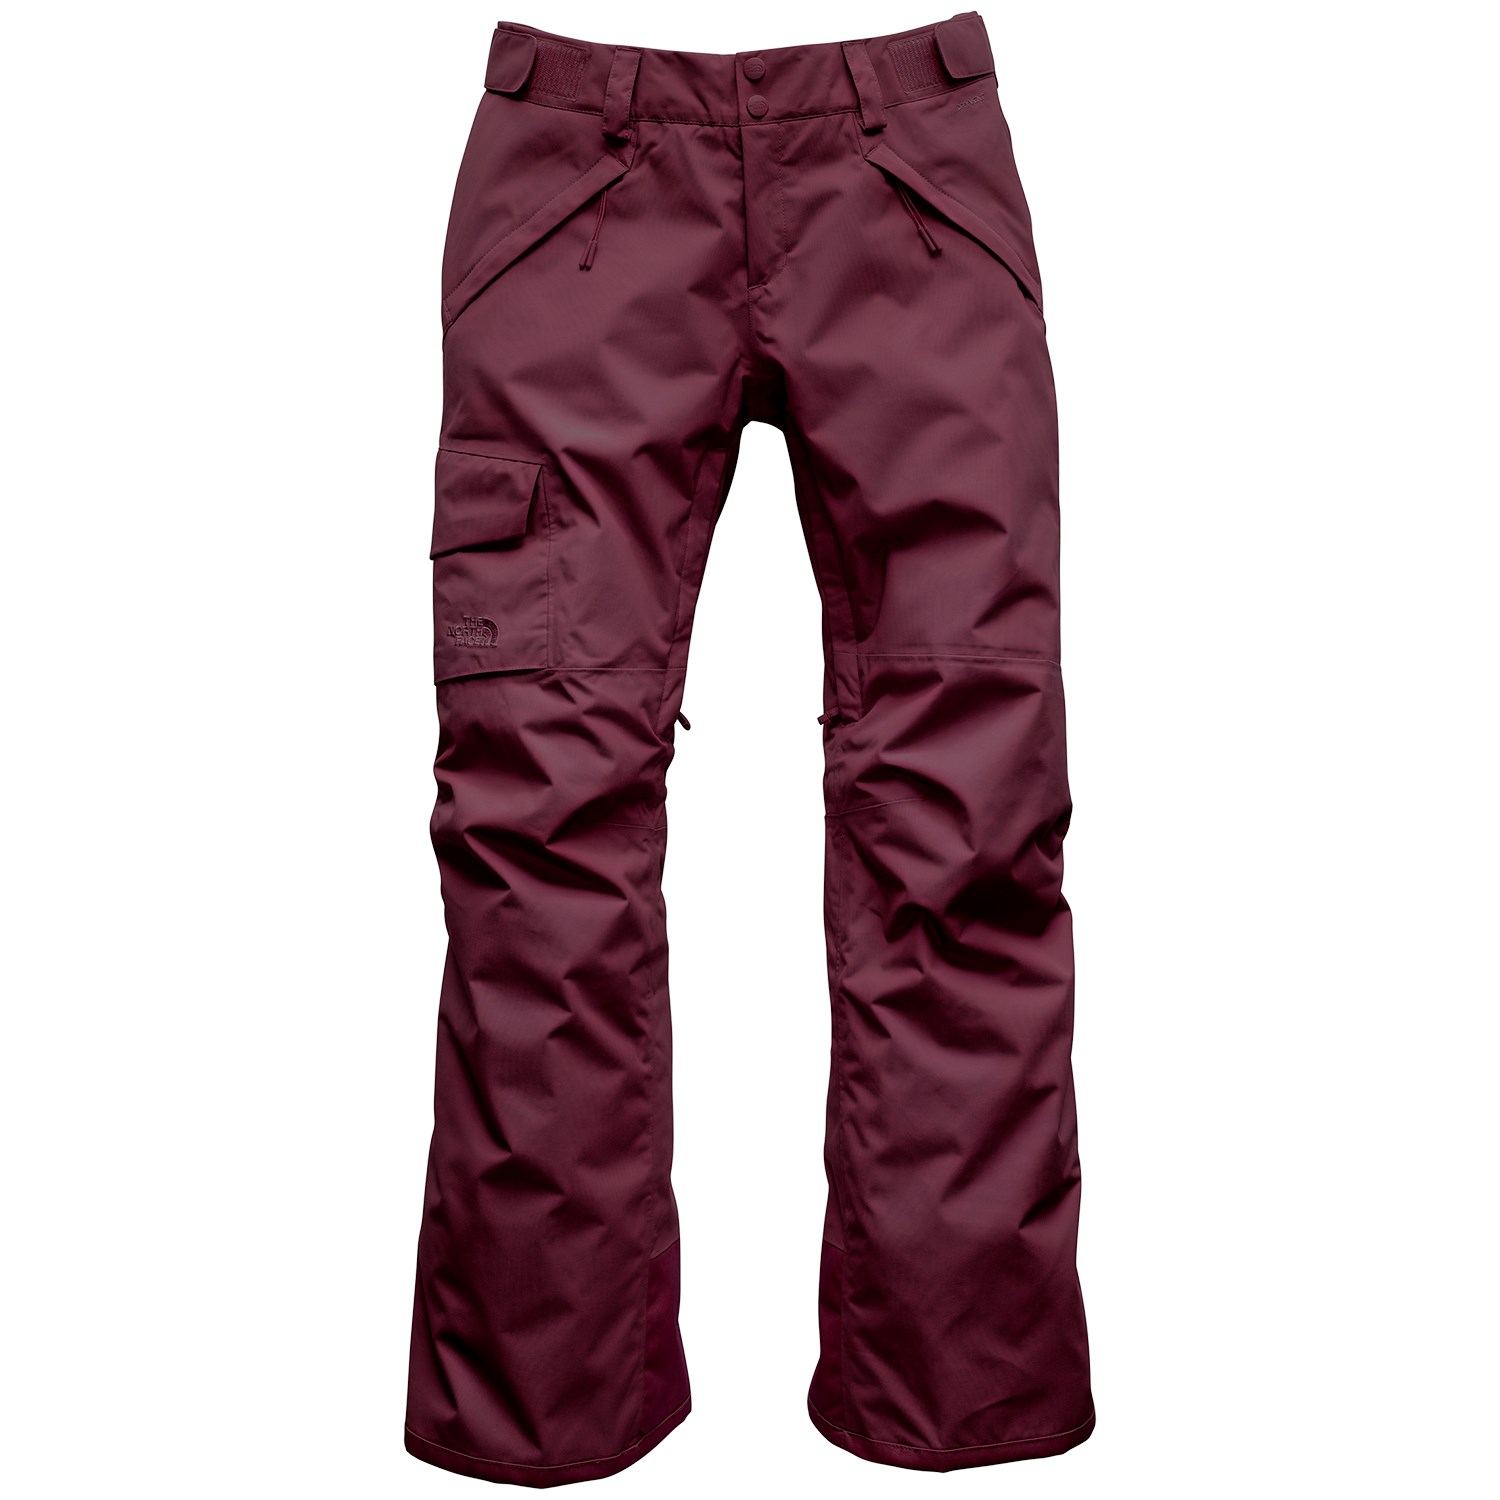 3edba6494 The North Face Freedom Insulated Pants - Women's